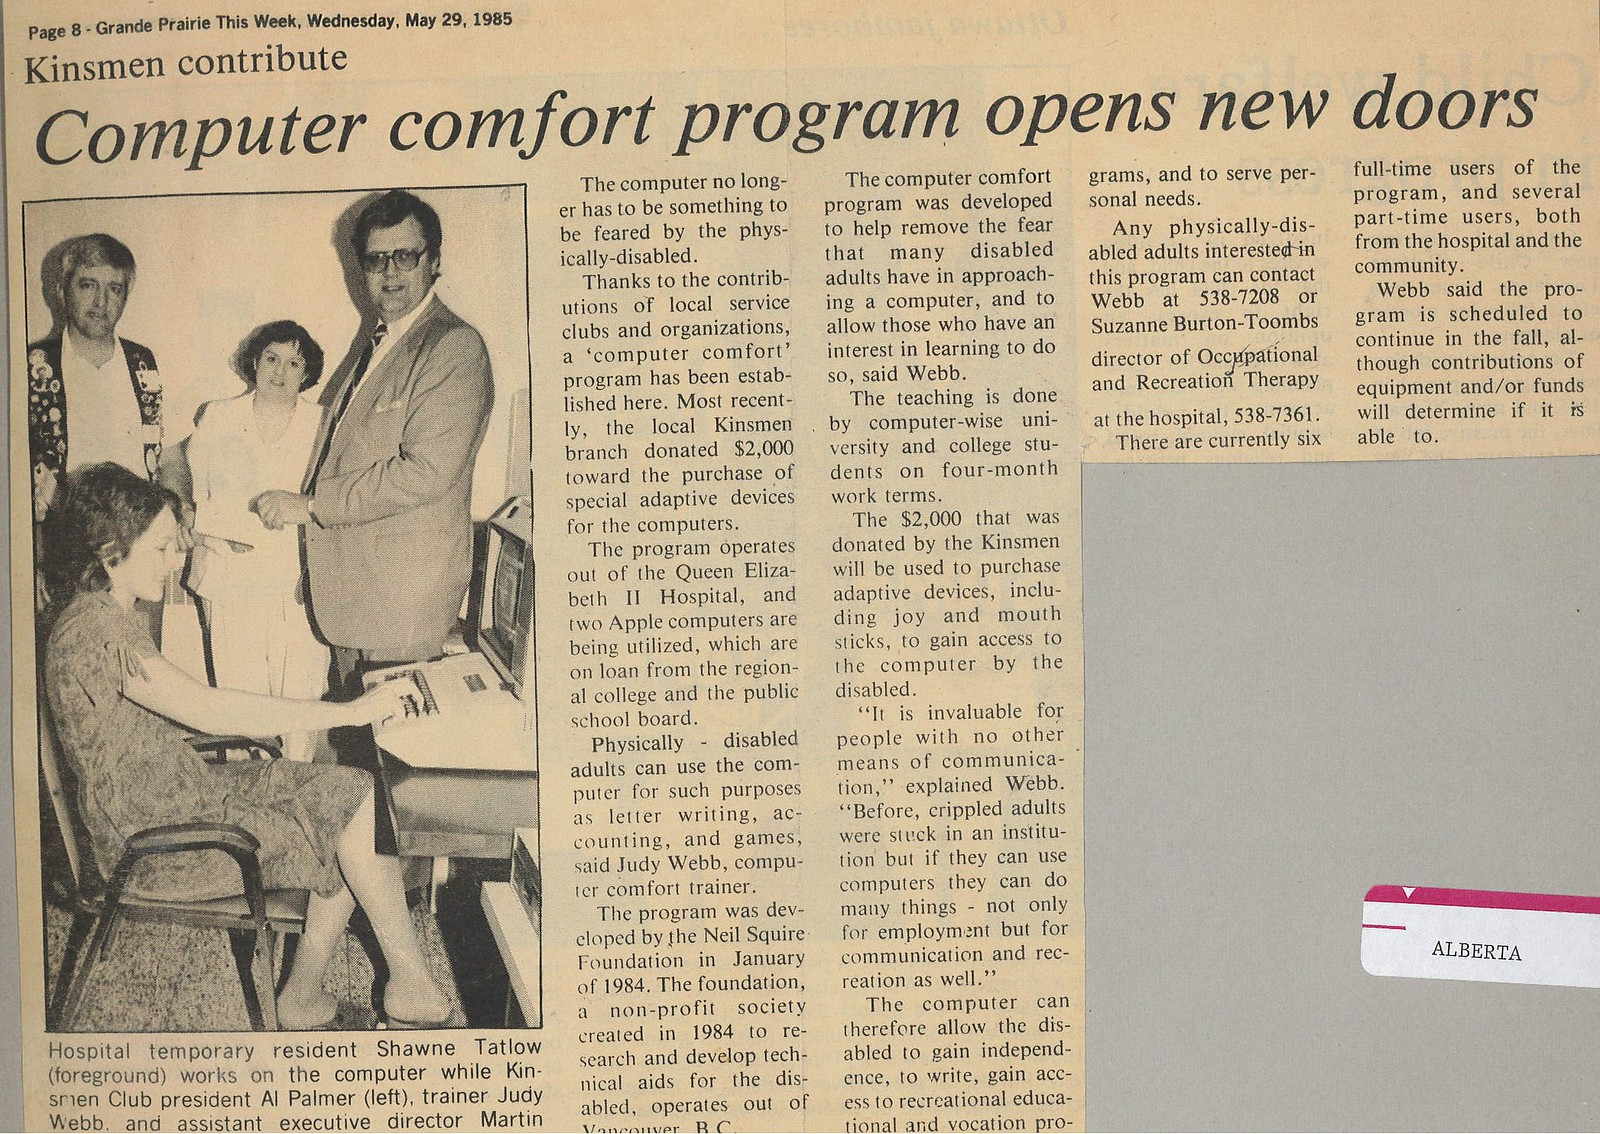 Newspaper Clipping from Grand Prairie.  Headline: Computer Comfort Program opens new doors.